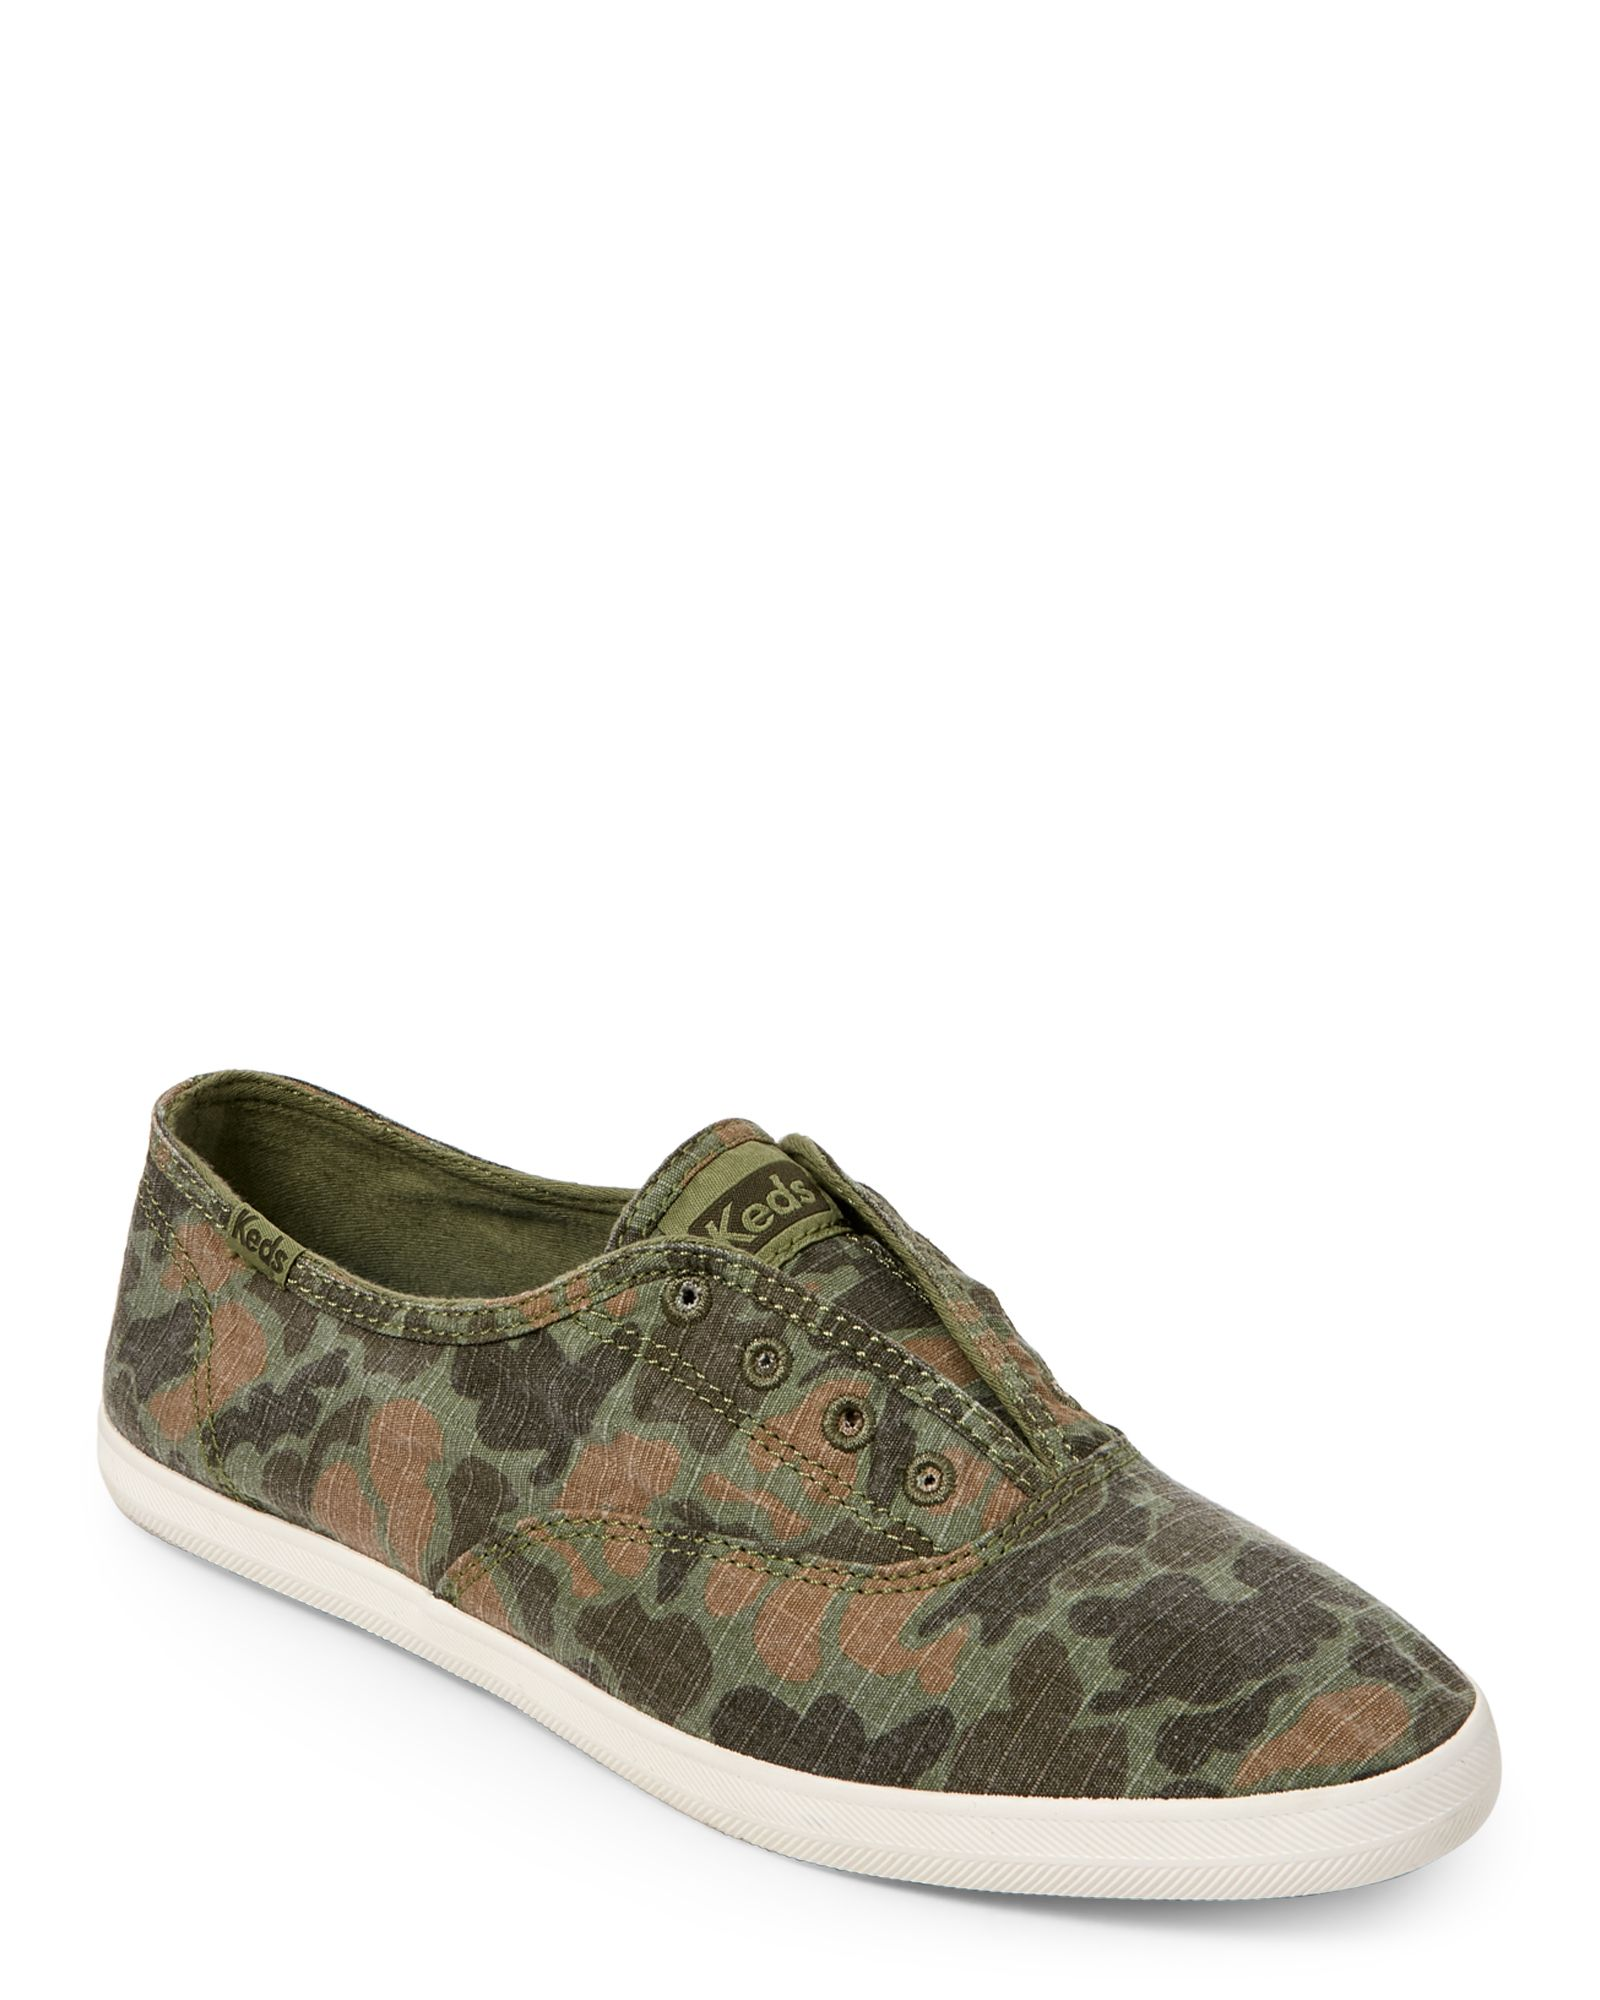 328934af0711 Keds Olive Chillax Camo Ripstop Slip-On Sneakers